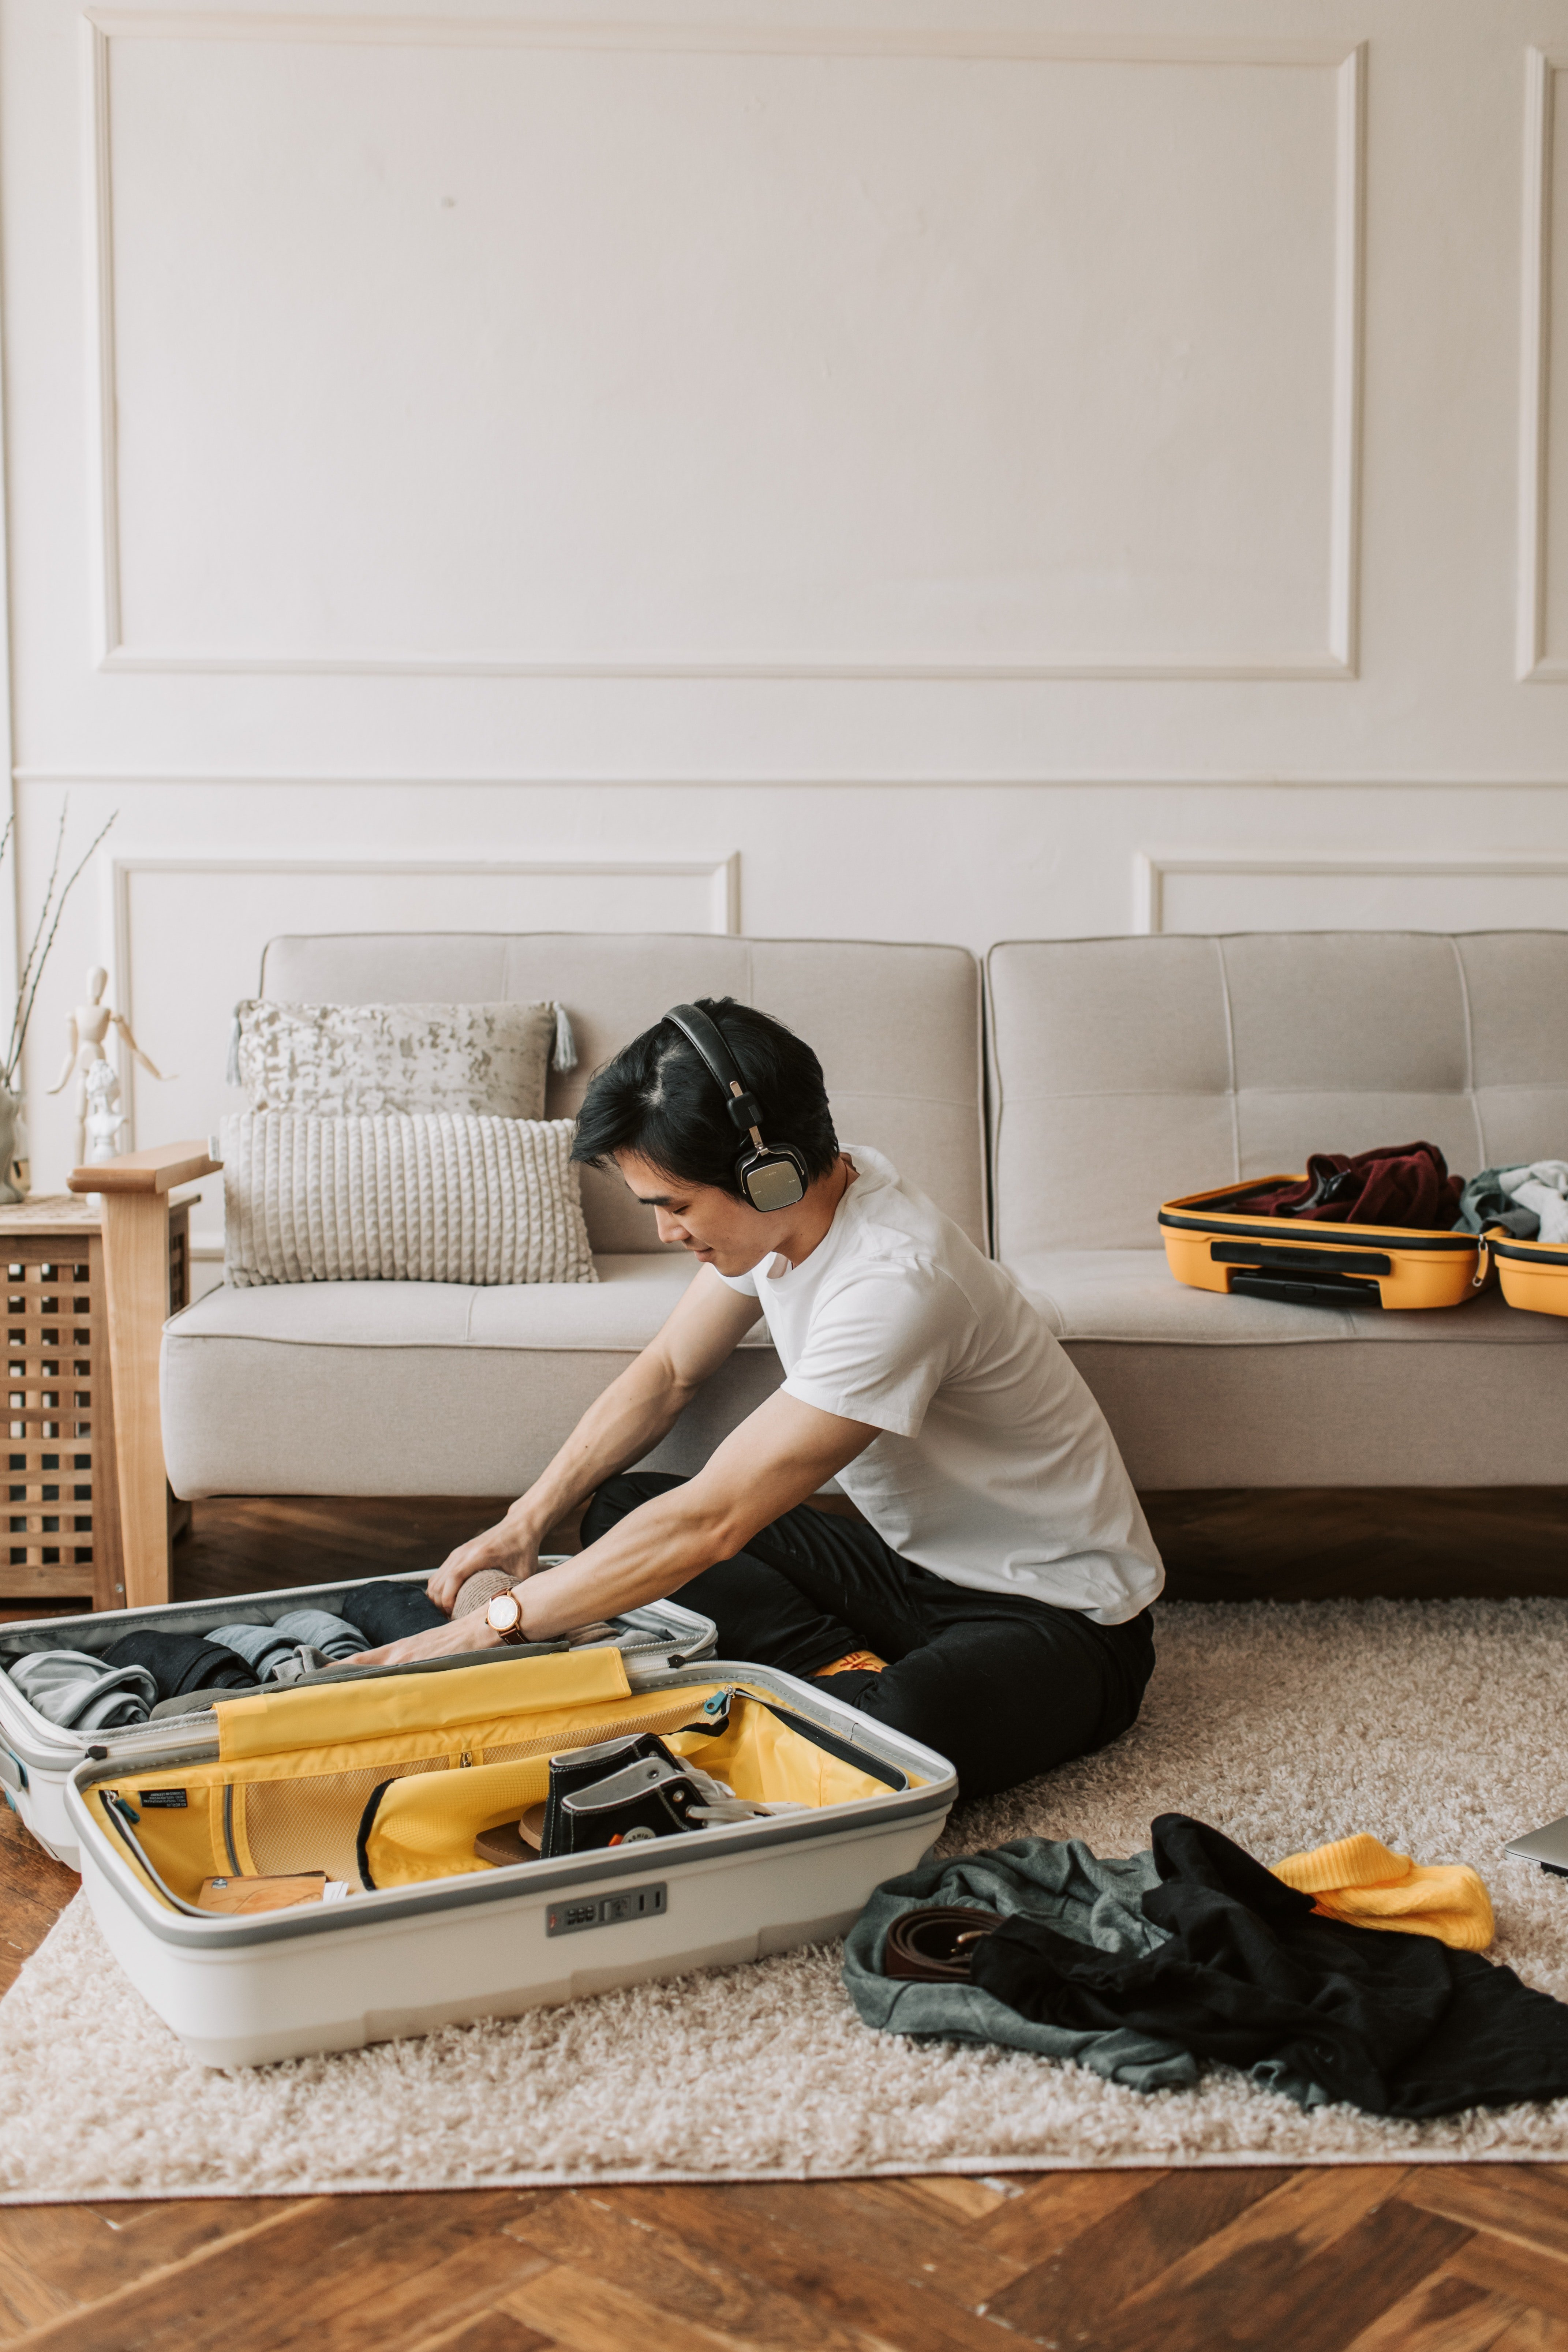 I packed and stayed at my friend's place until my father was back.   Source: Pexel